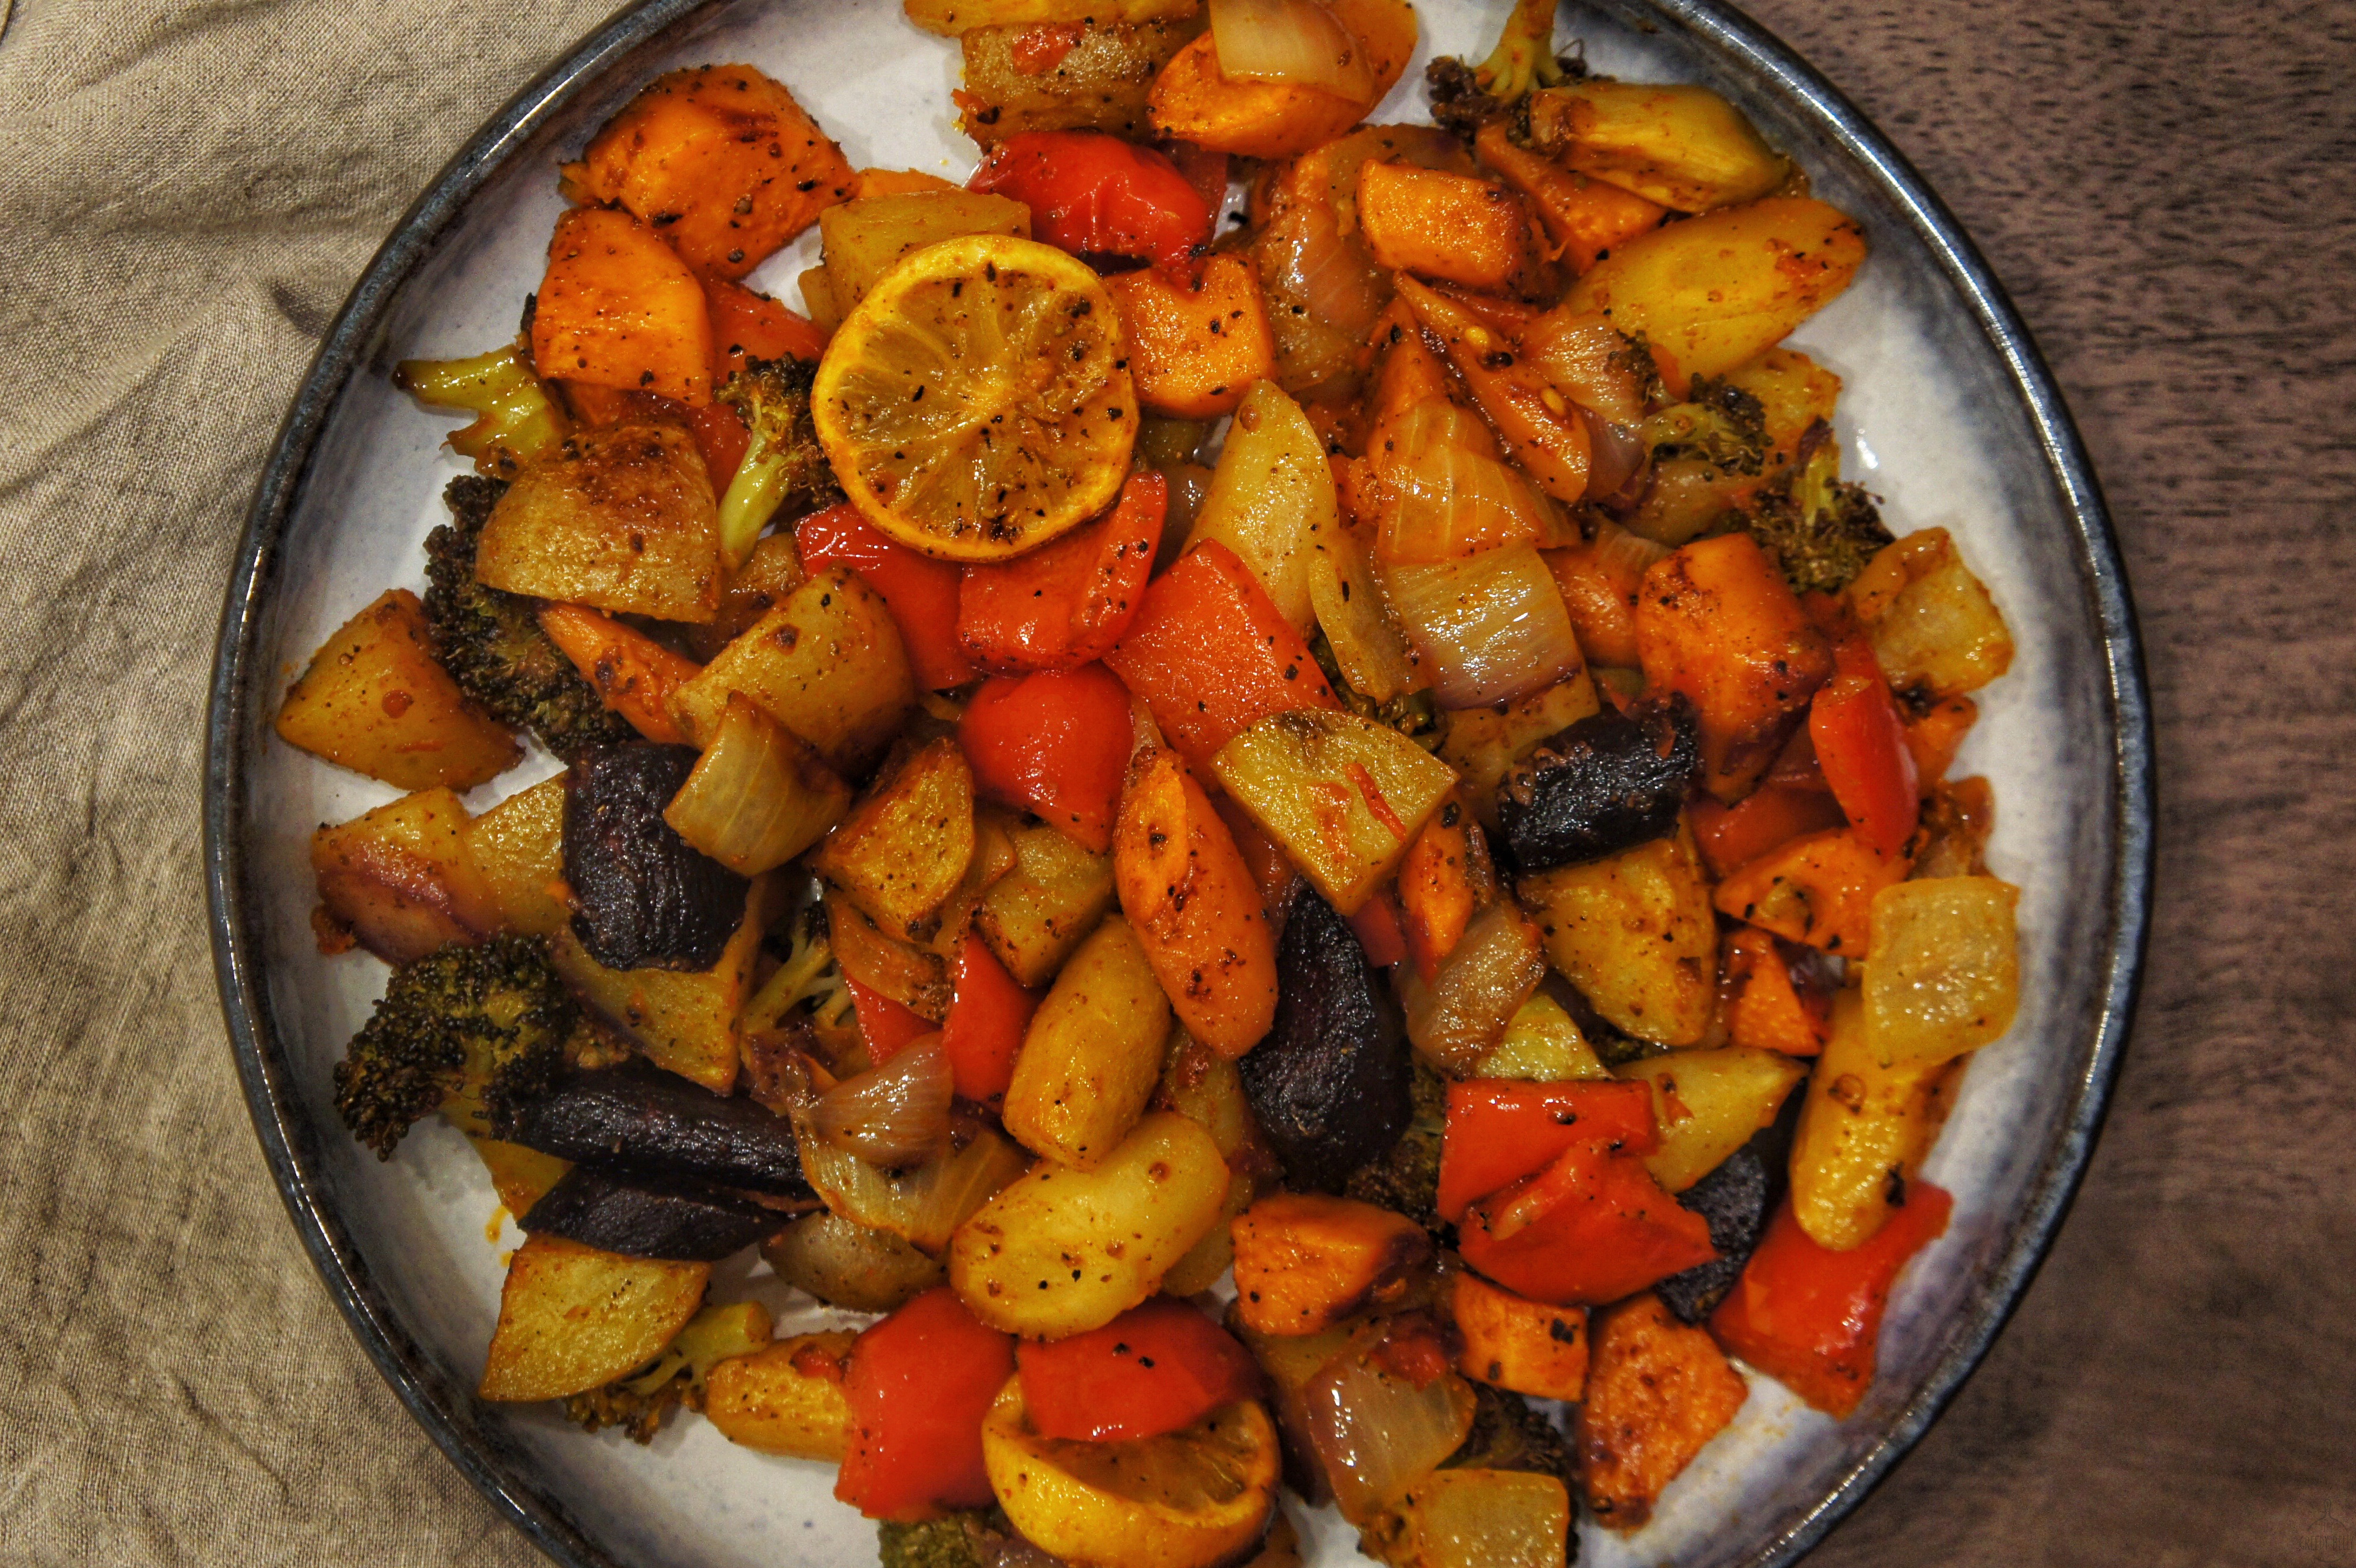 Morroccan Style Roasted Vegetables